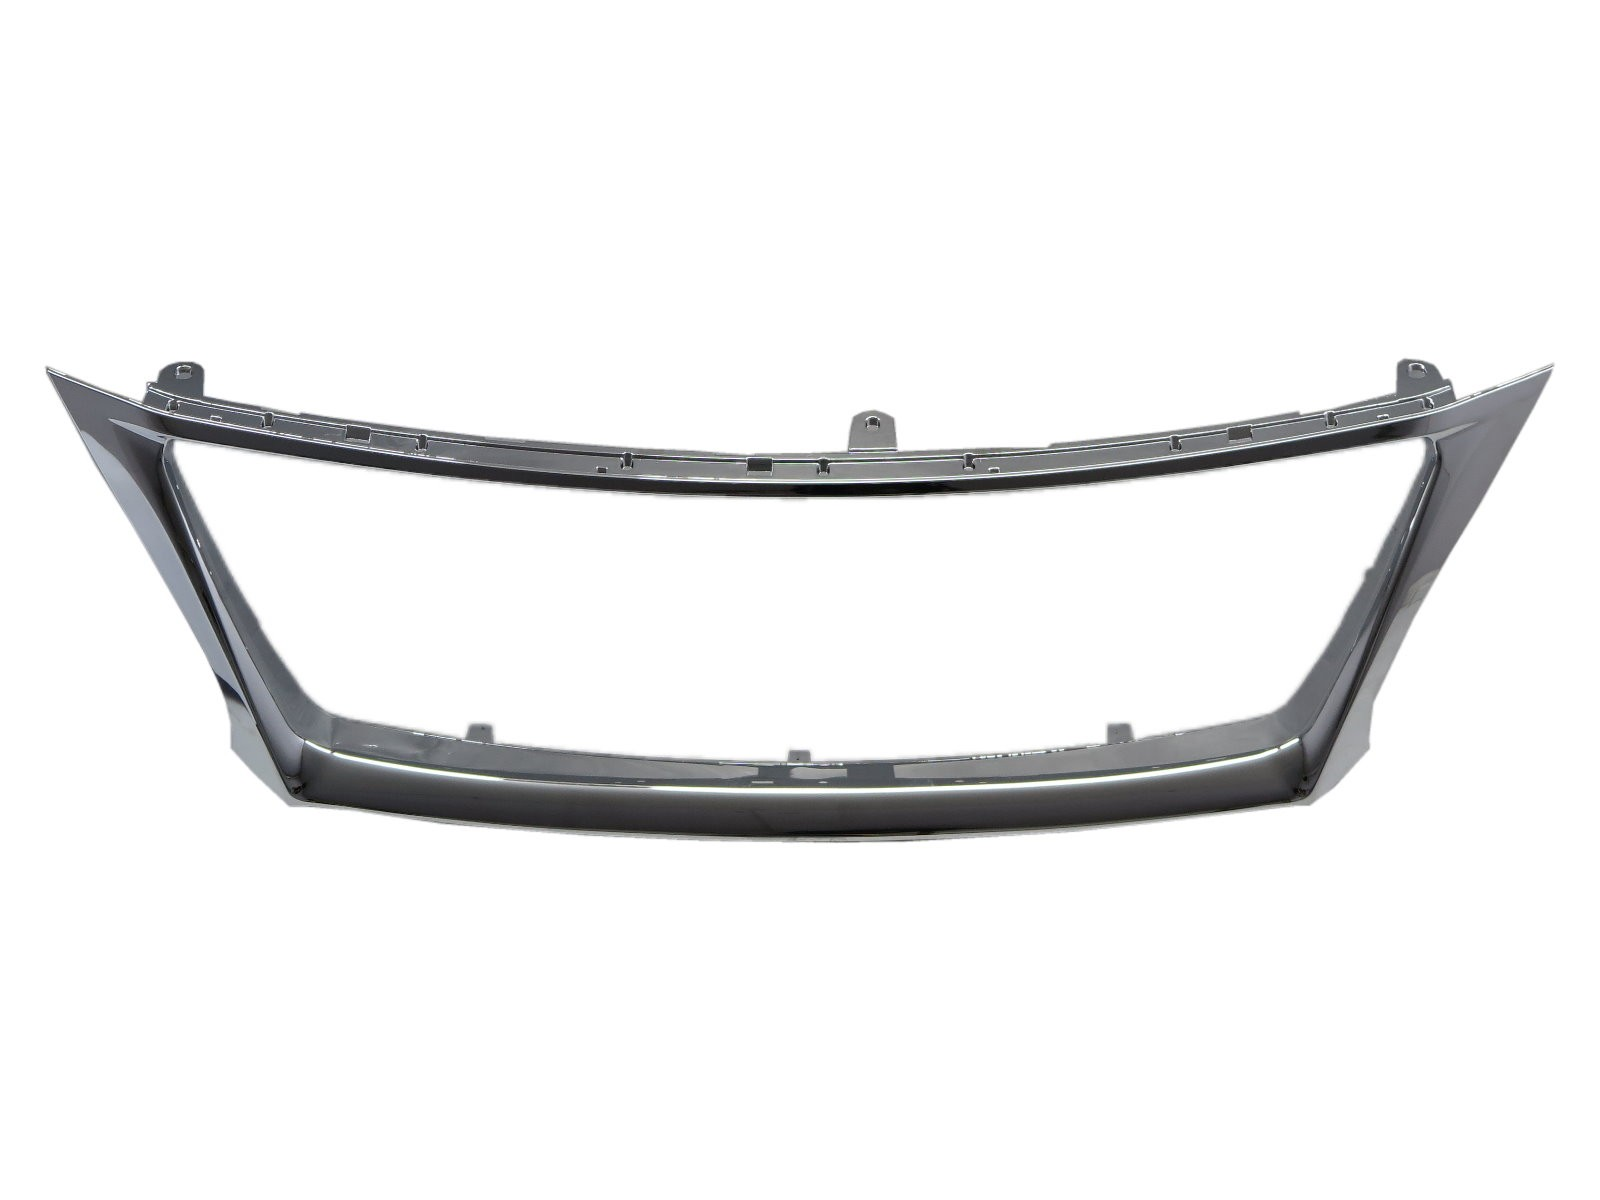 CrazyTheGod IS IS250/IS350/IS220D XE20 Second generation 2009-2010 FACELIFT Sedan 4D Surround Trim GRILLE/GRILL Chrome for LEXUS